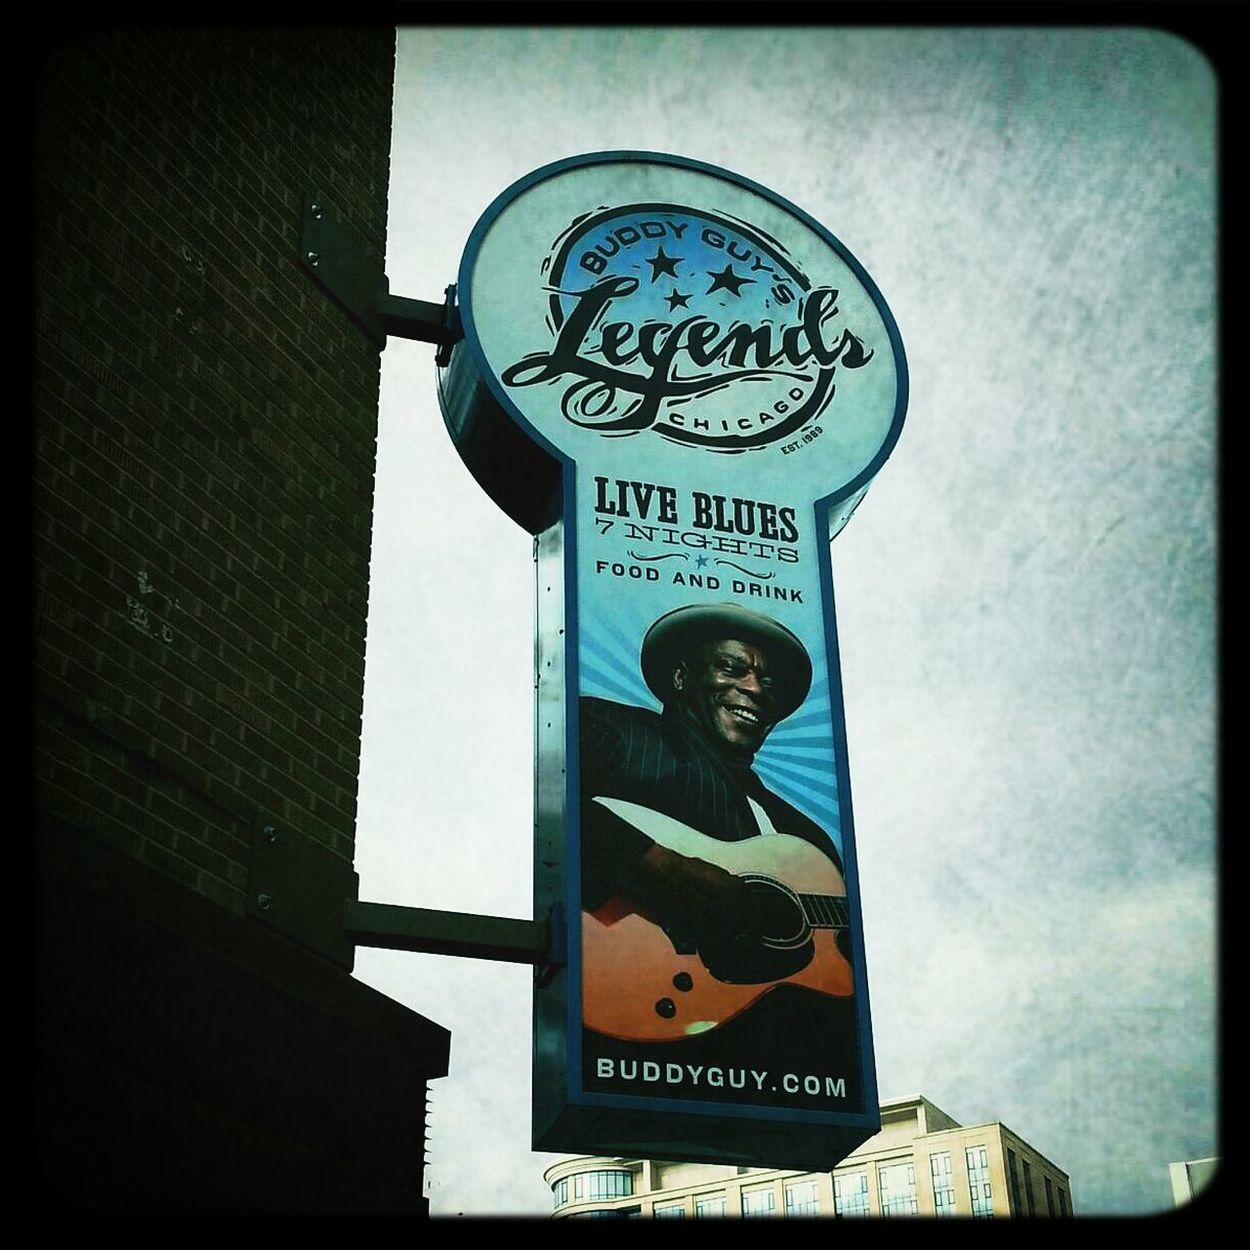 Buddy Guy's Legends Chicago Live Blues